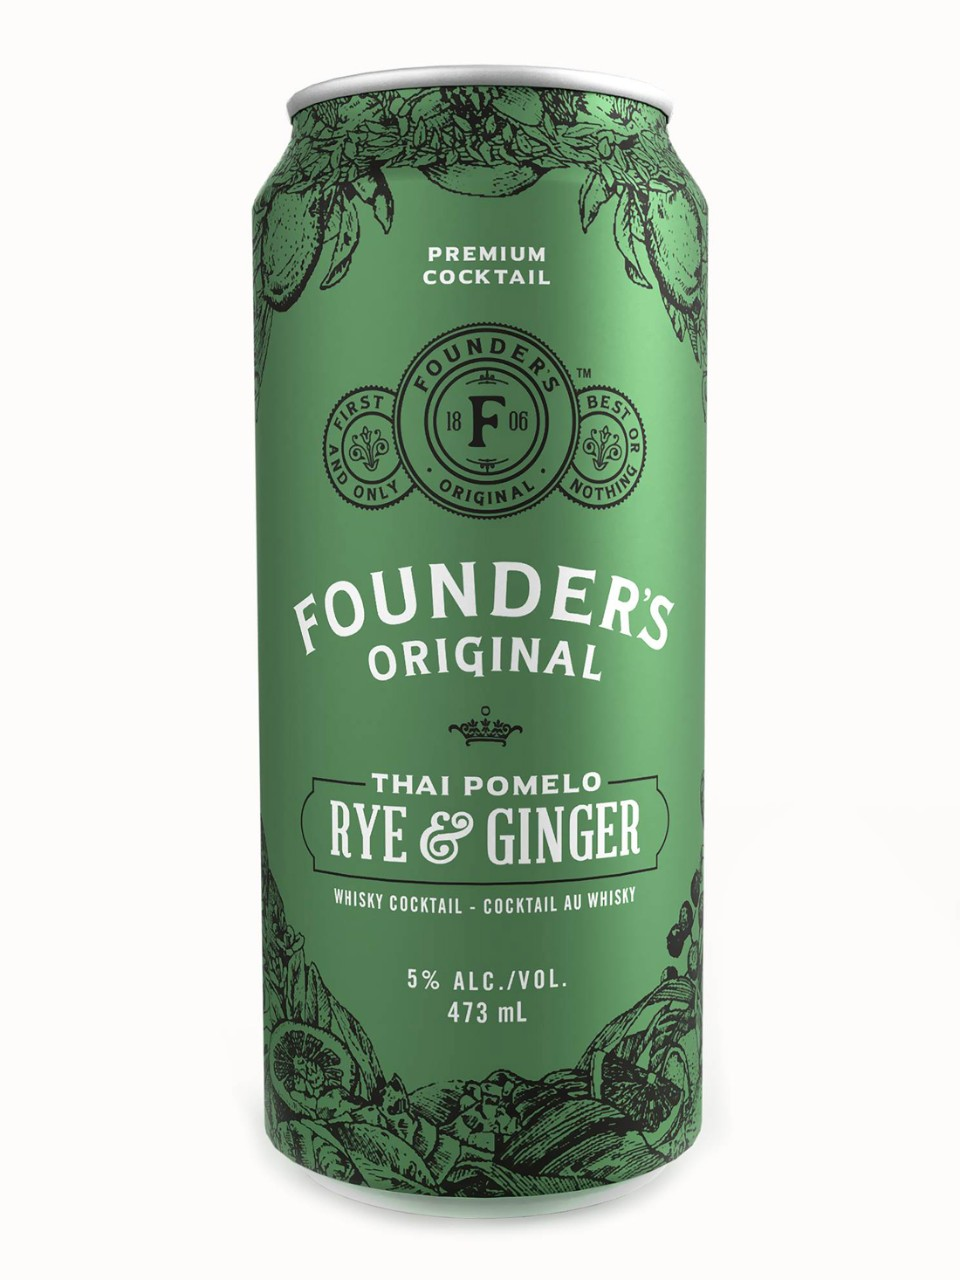 Image for Founder's Original Thai Pomelo Rye & Ginger from LCBO